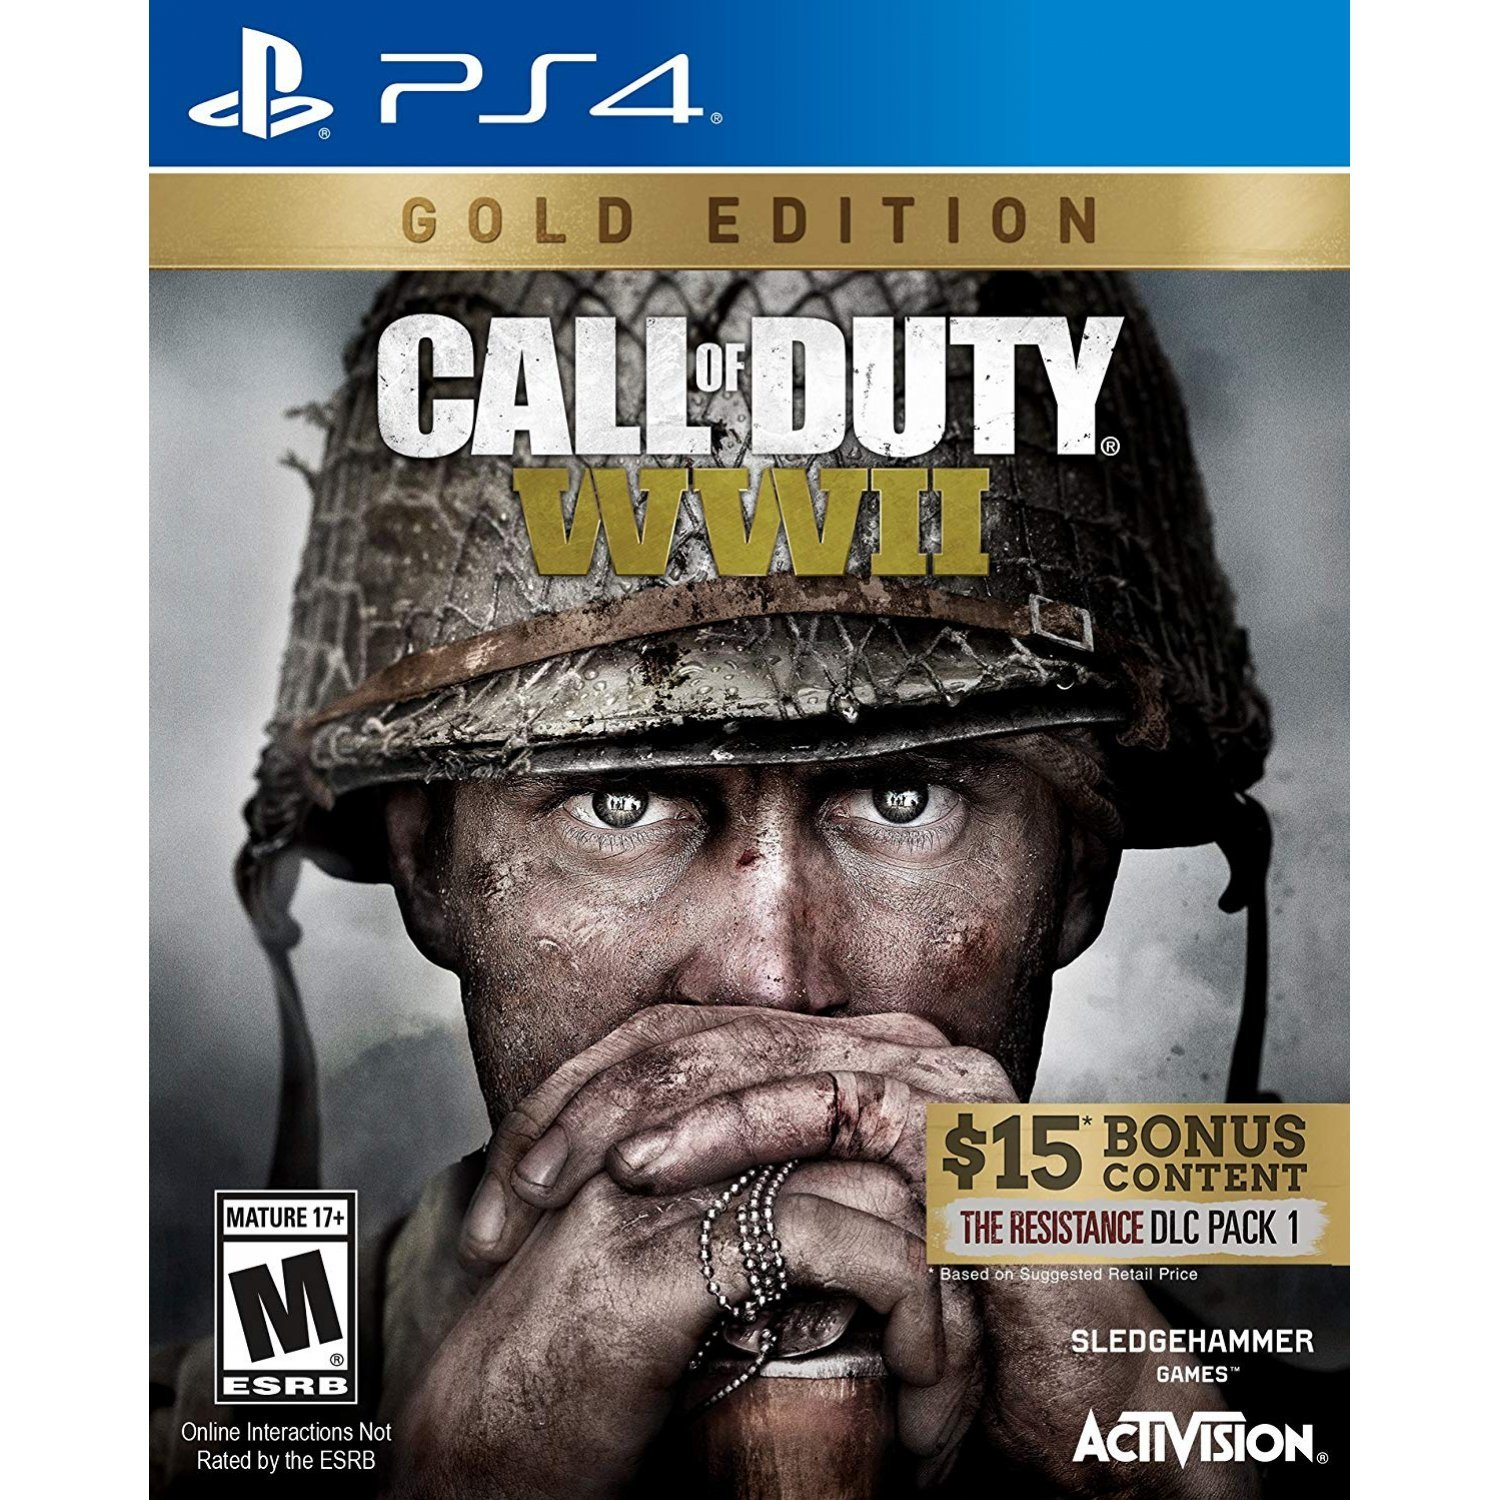 call-of-duty-wwii-gold-edition-585765.15.jpg